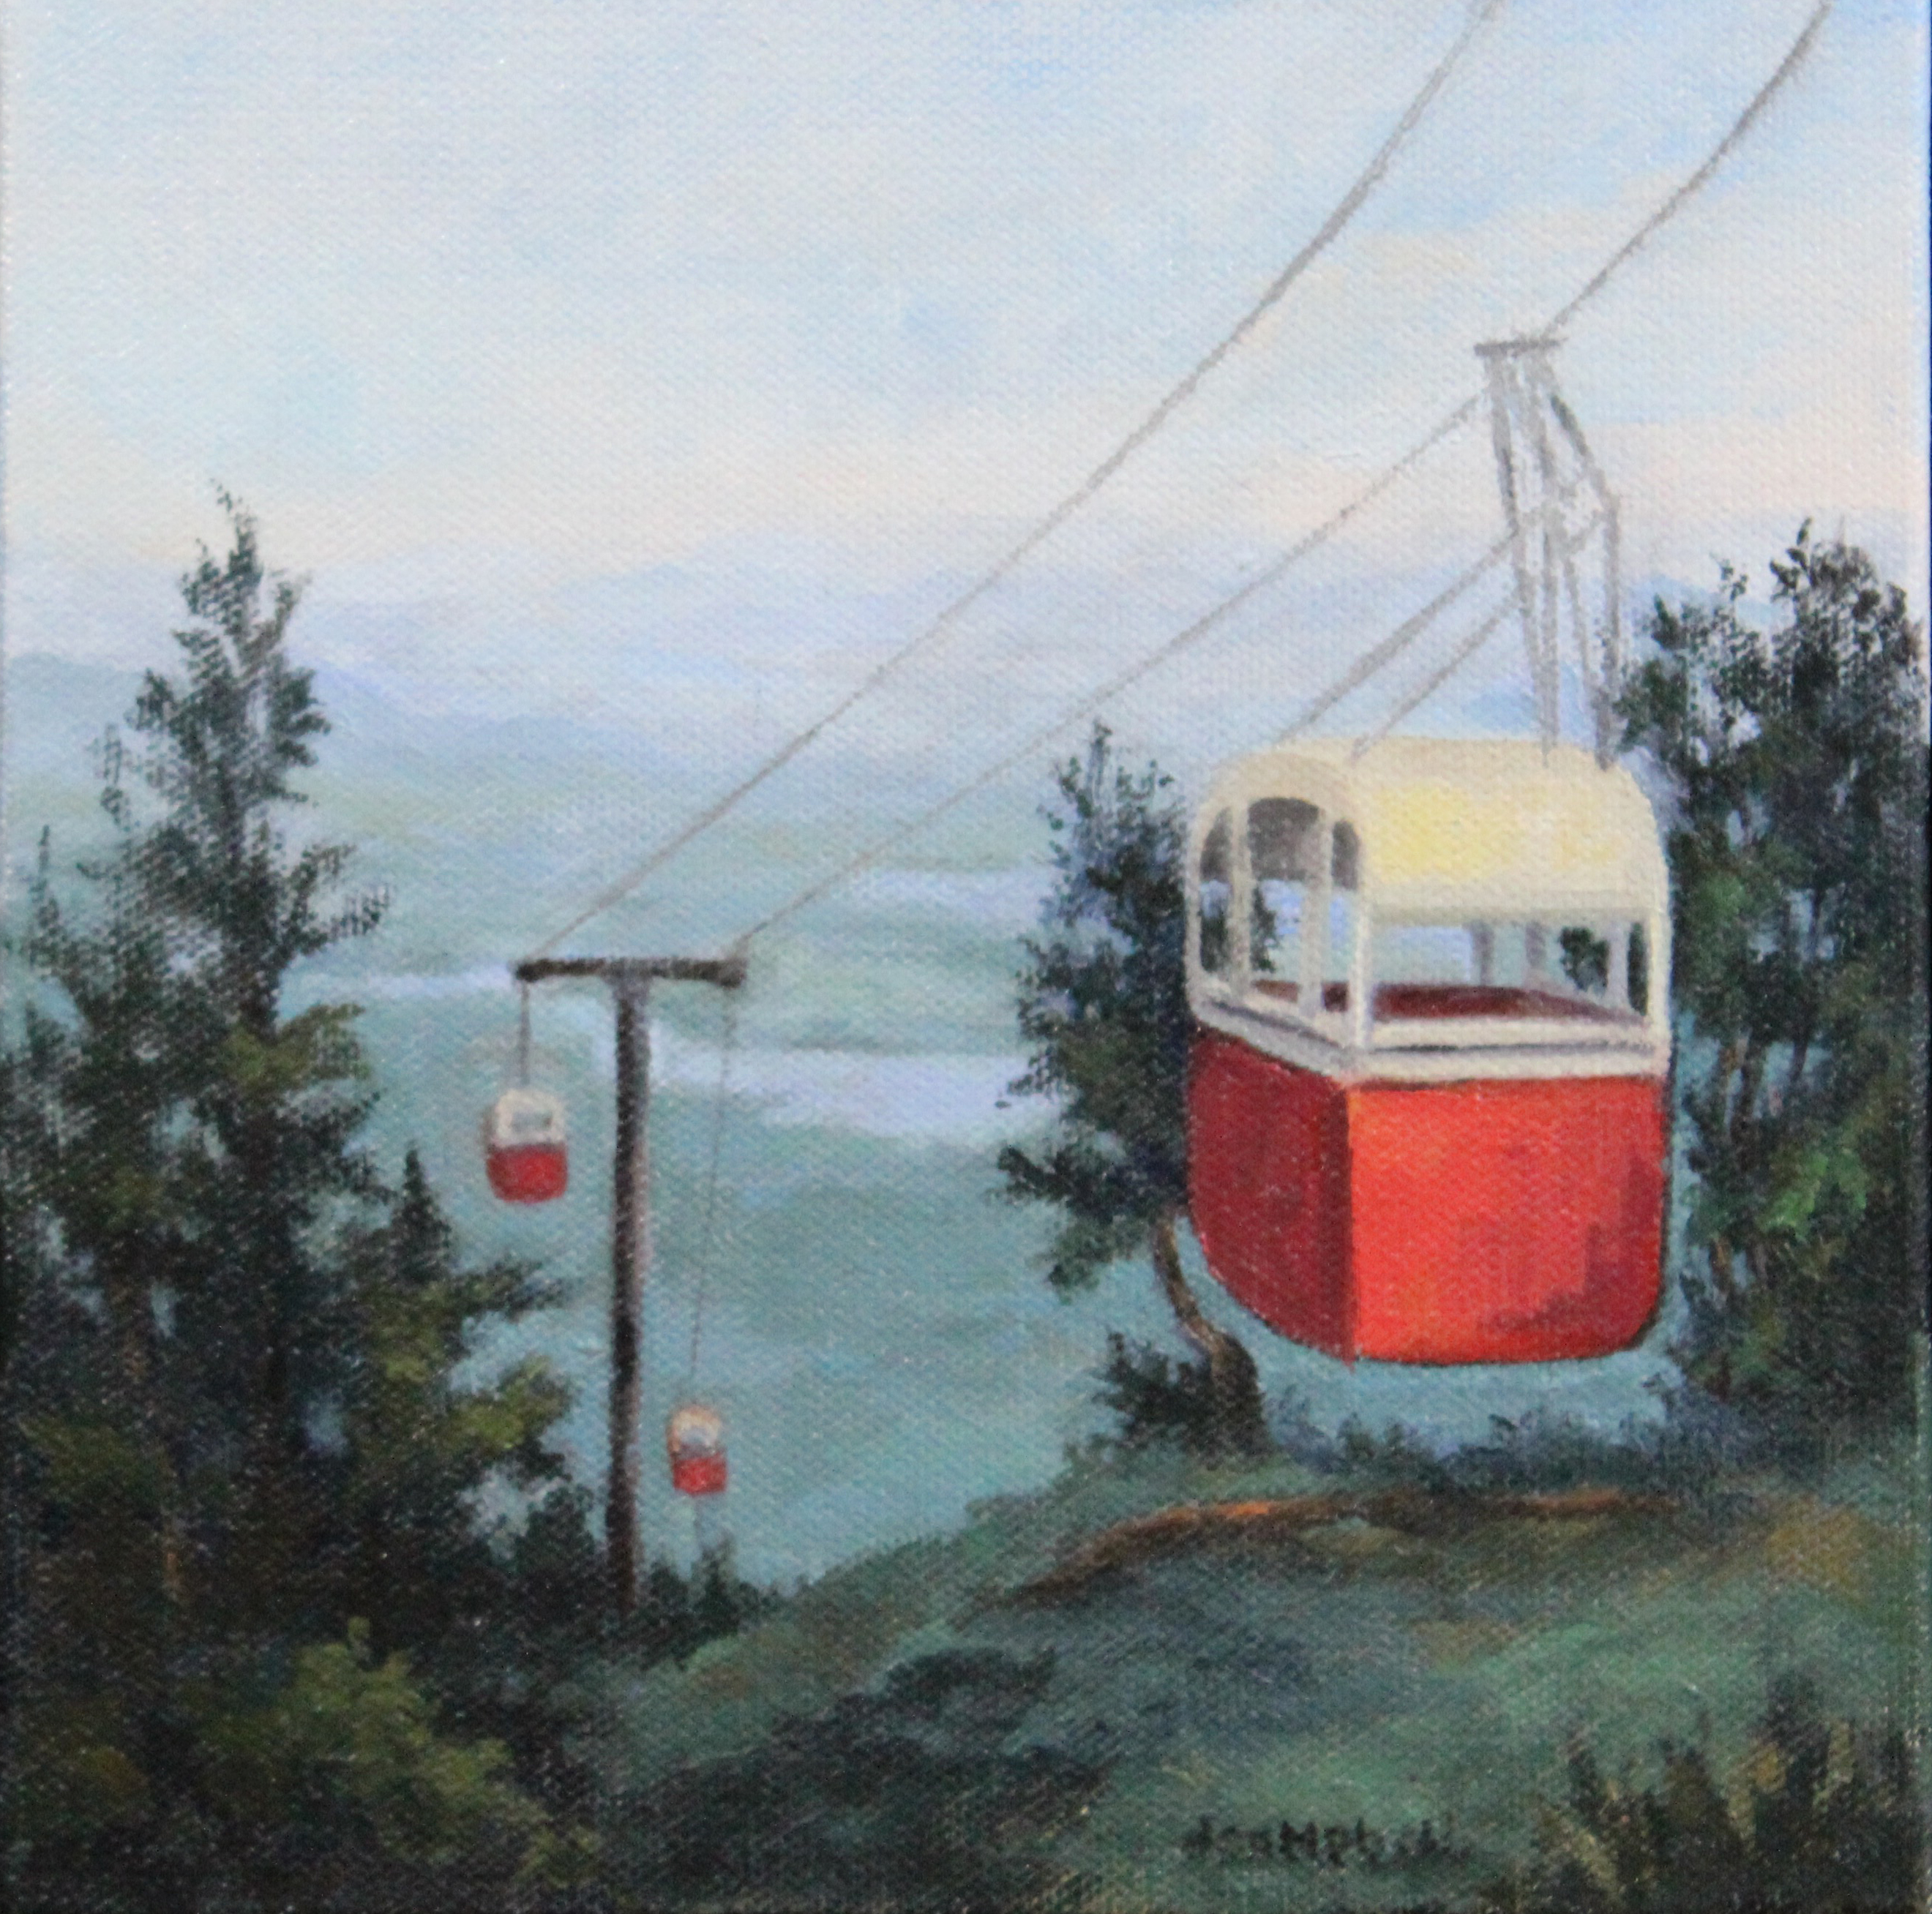 Circa 1960 gondola on Mt. Sunapee